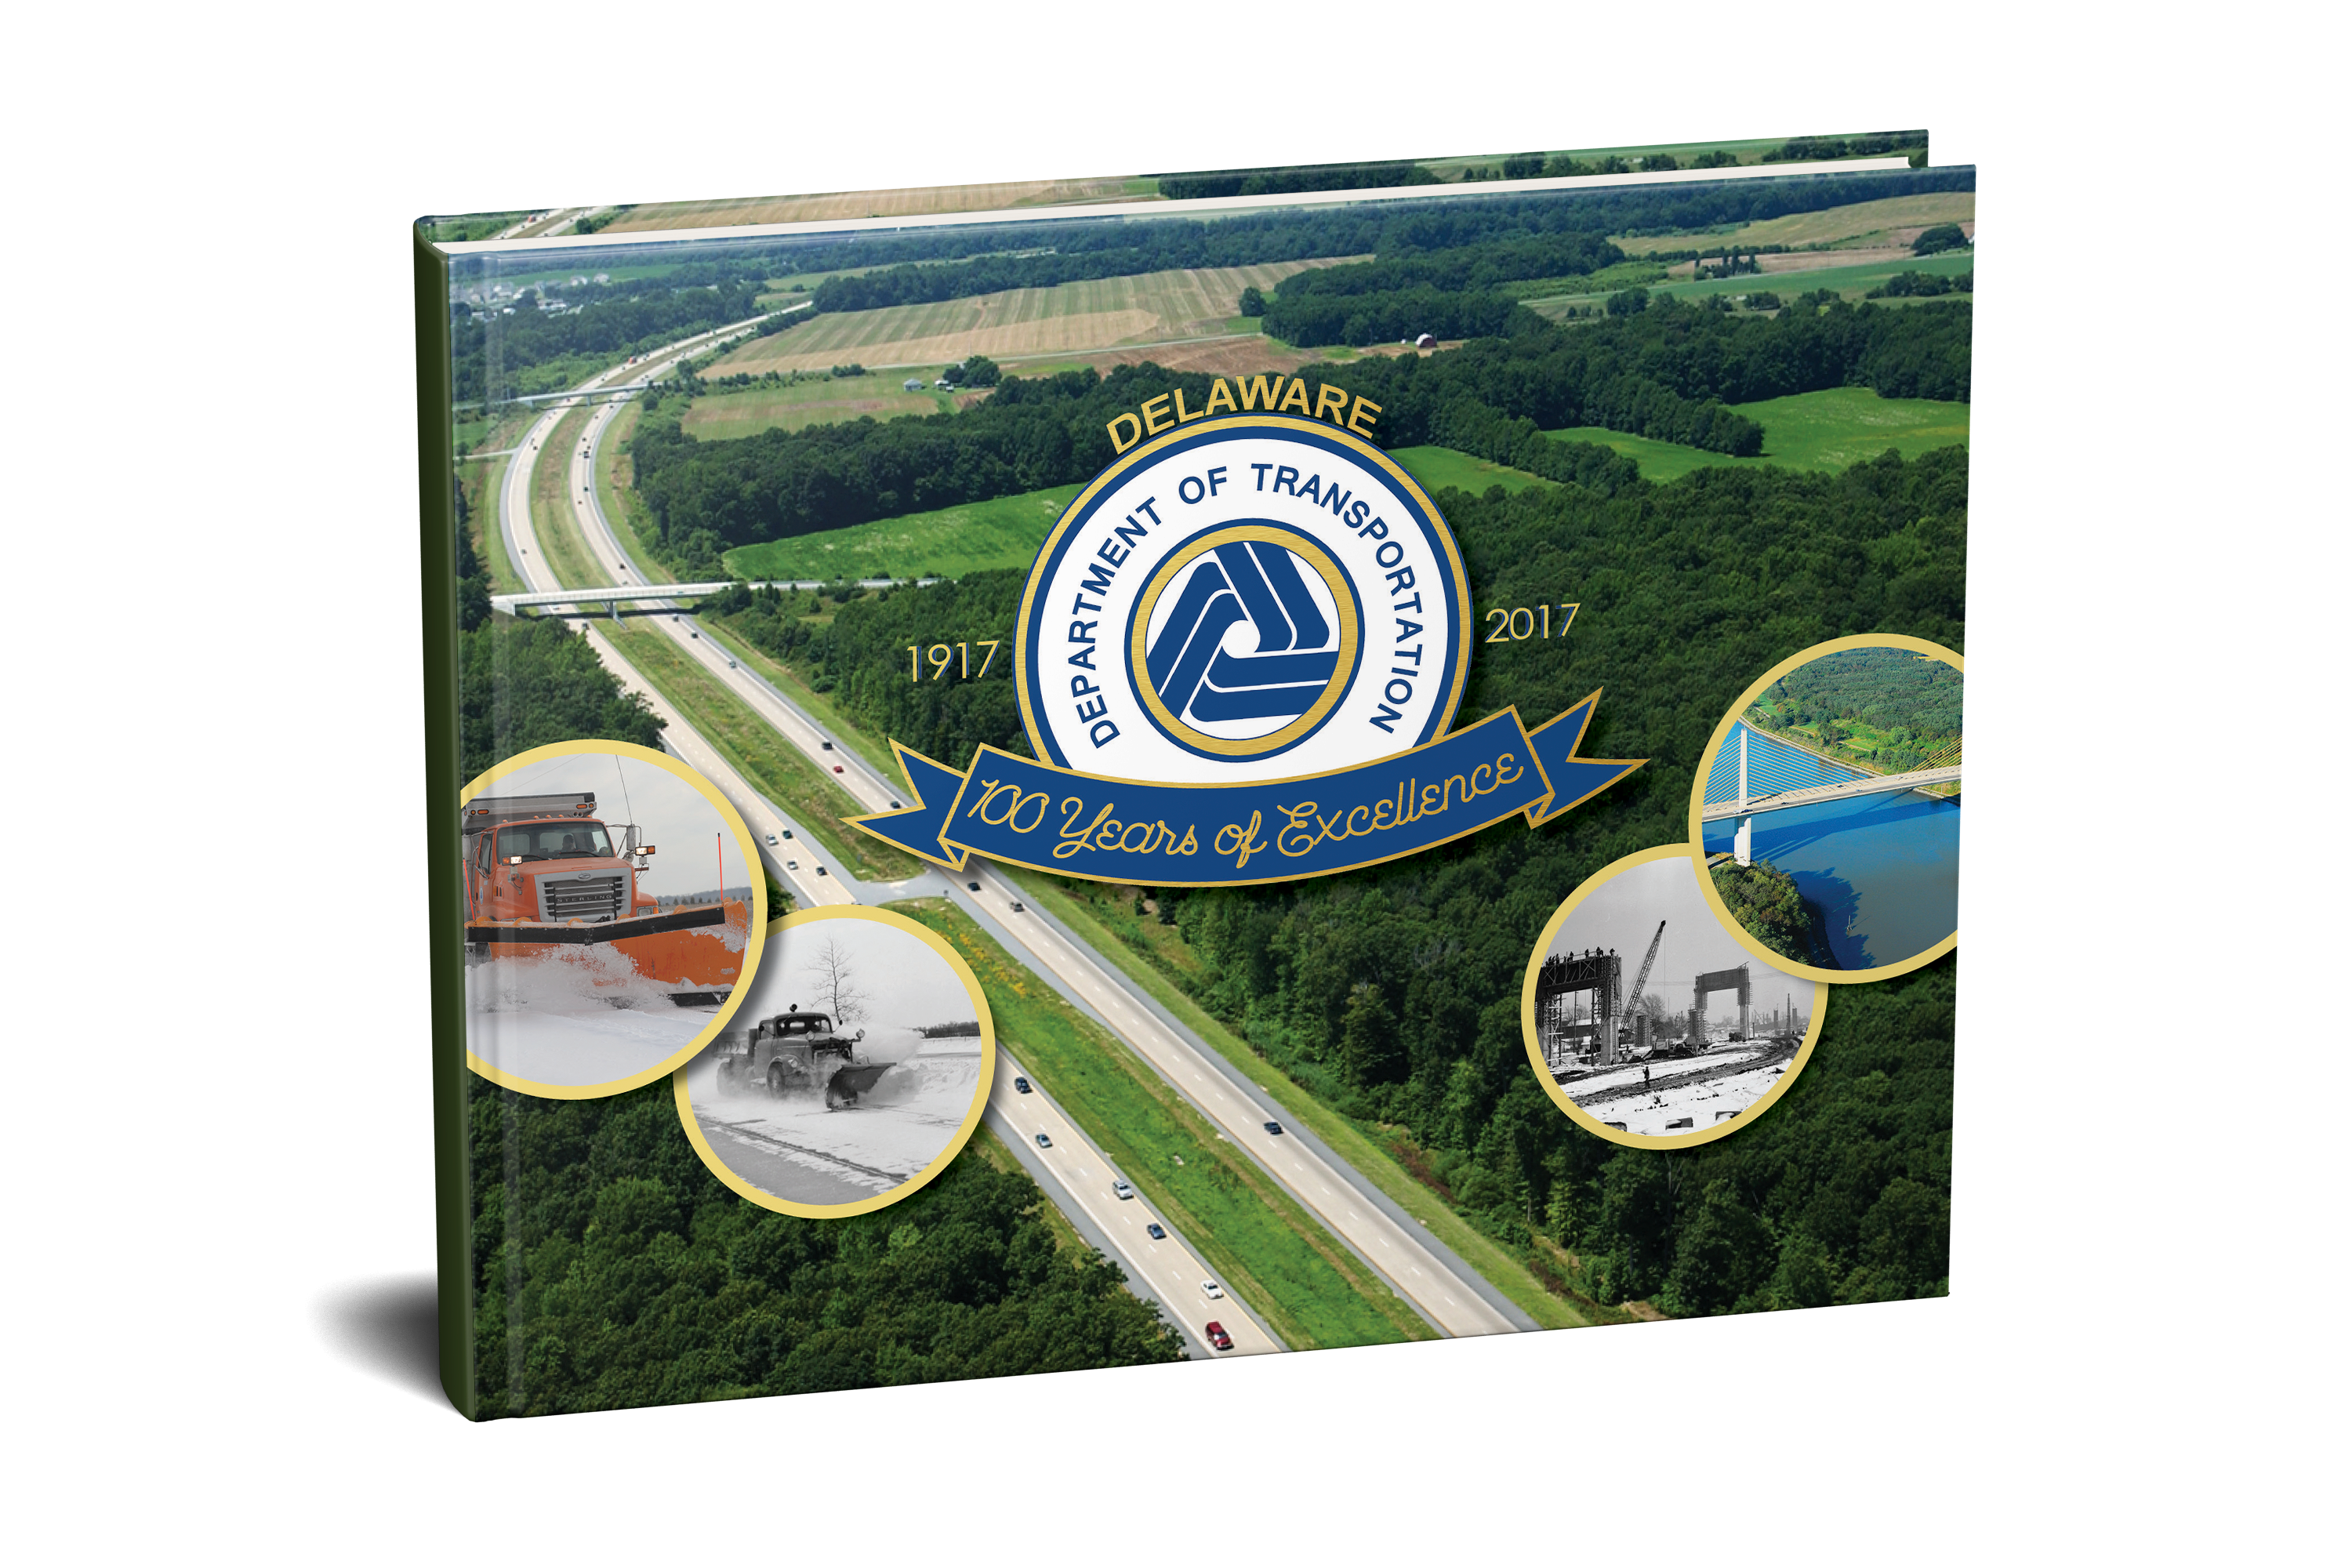 Delaware Department of Transportation's 100-Year Anniversary Book